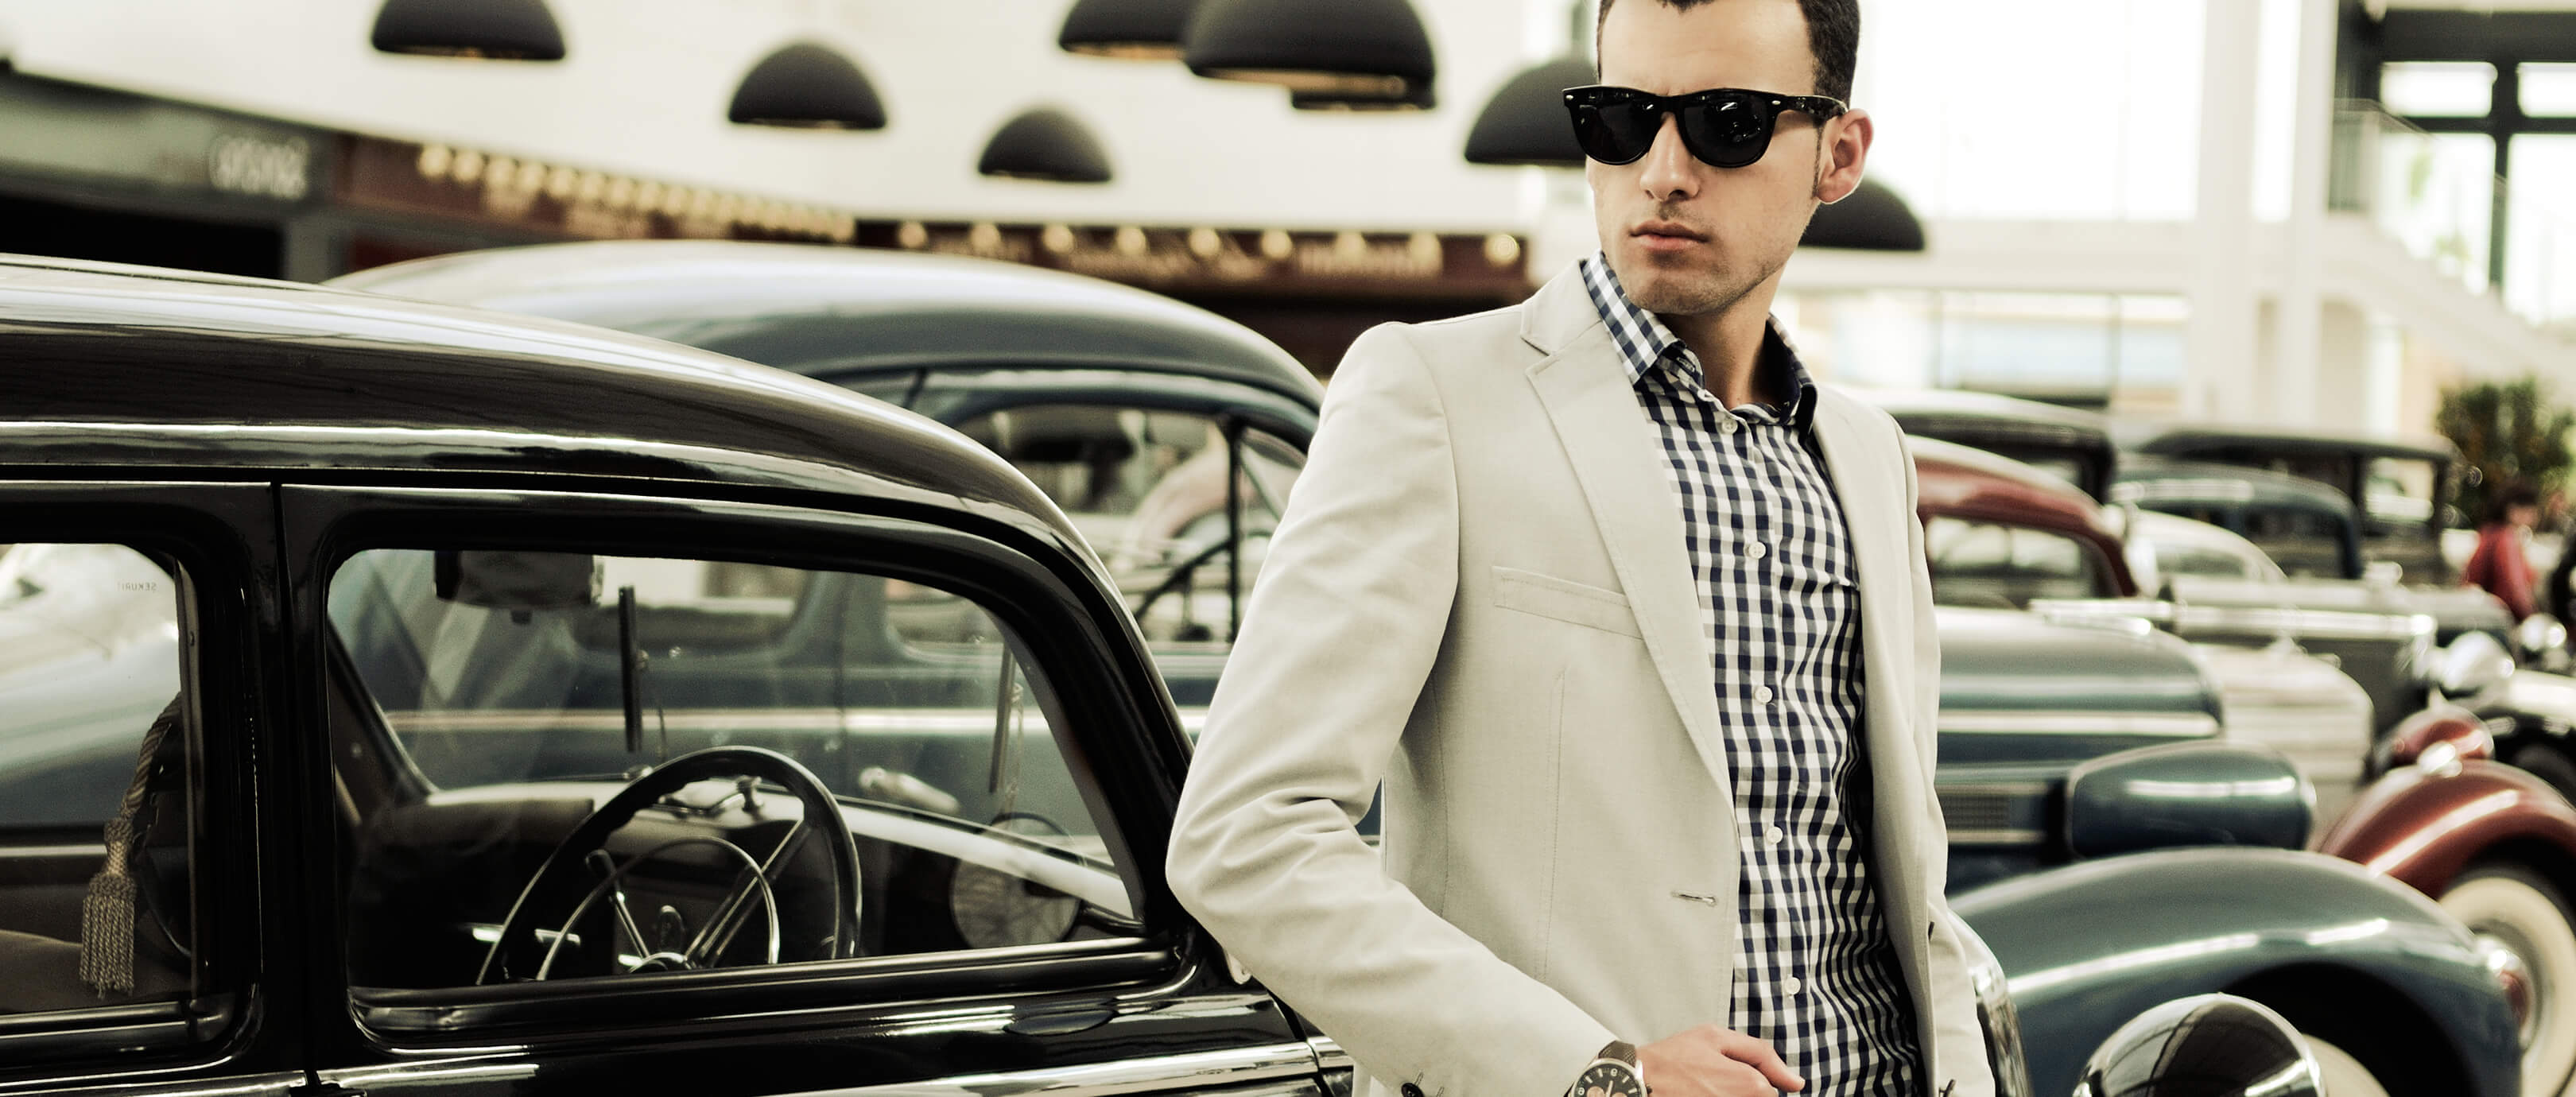 Tips_For_Business_Casual_Featured_Image_Fashion_Style